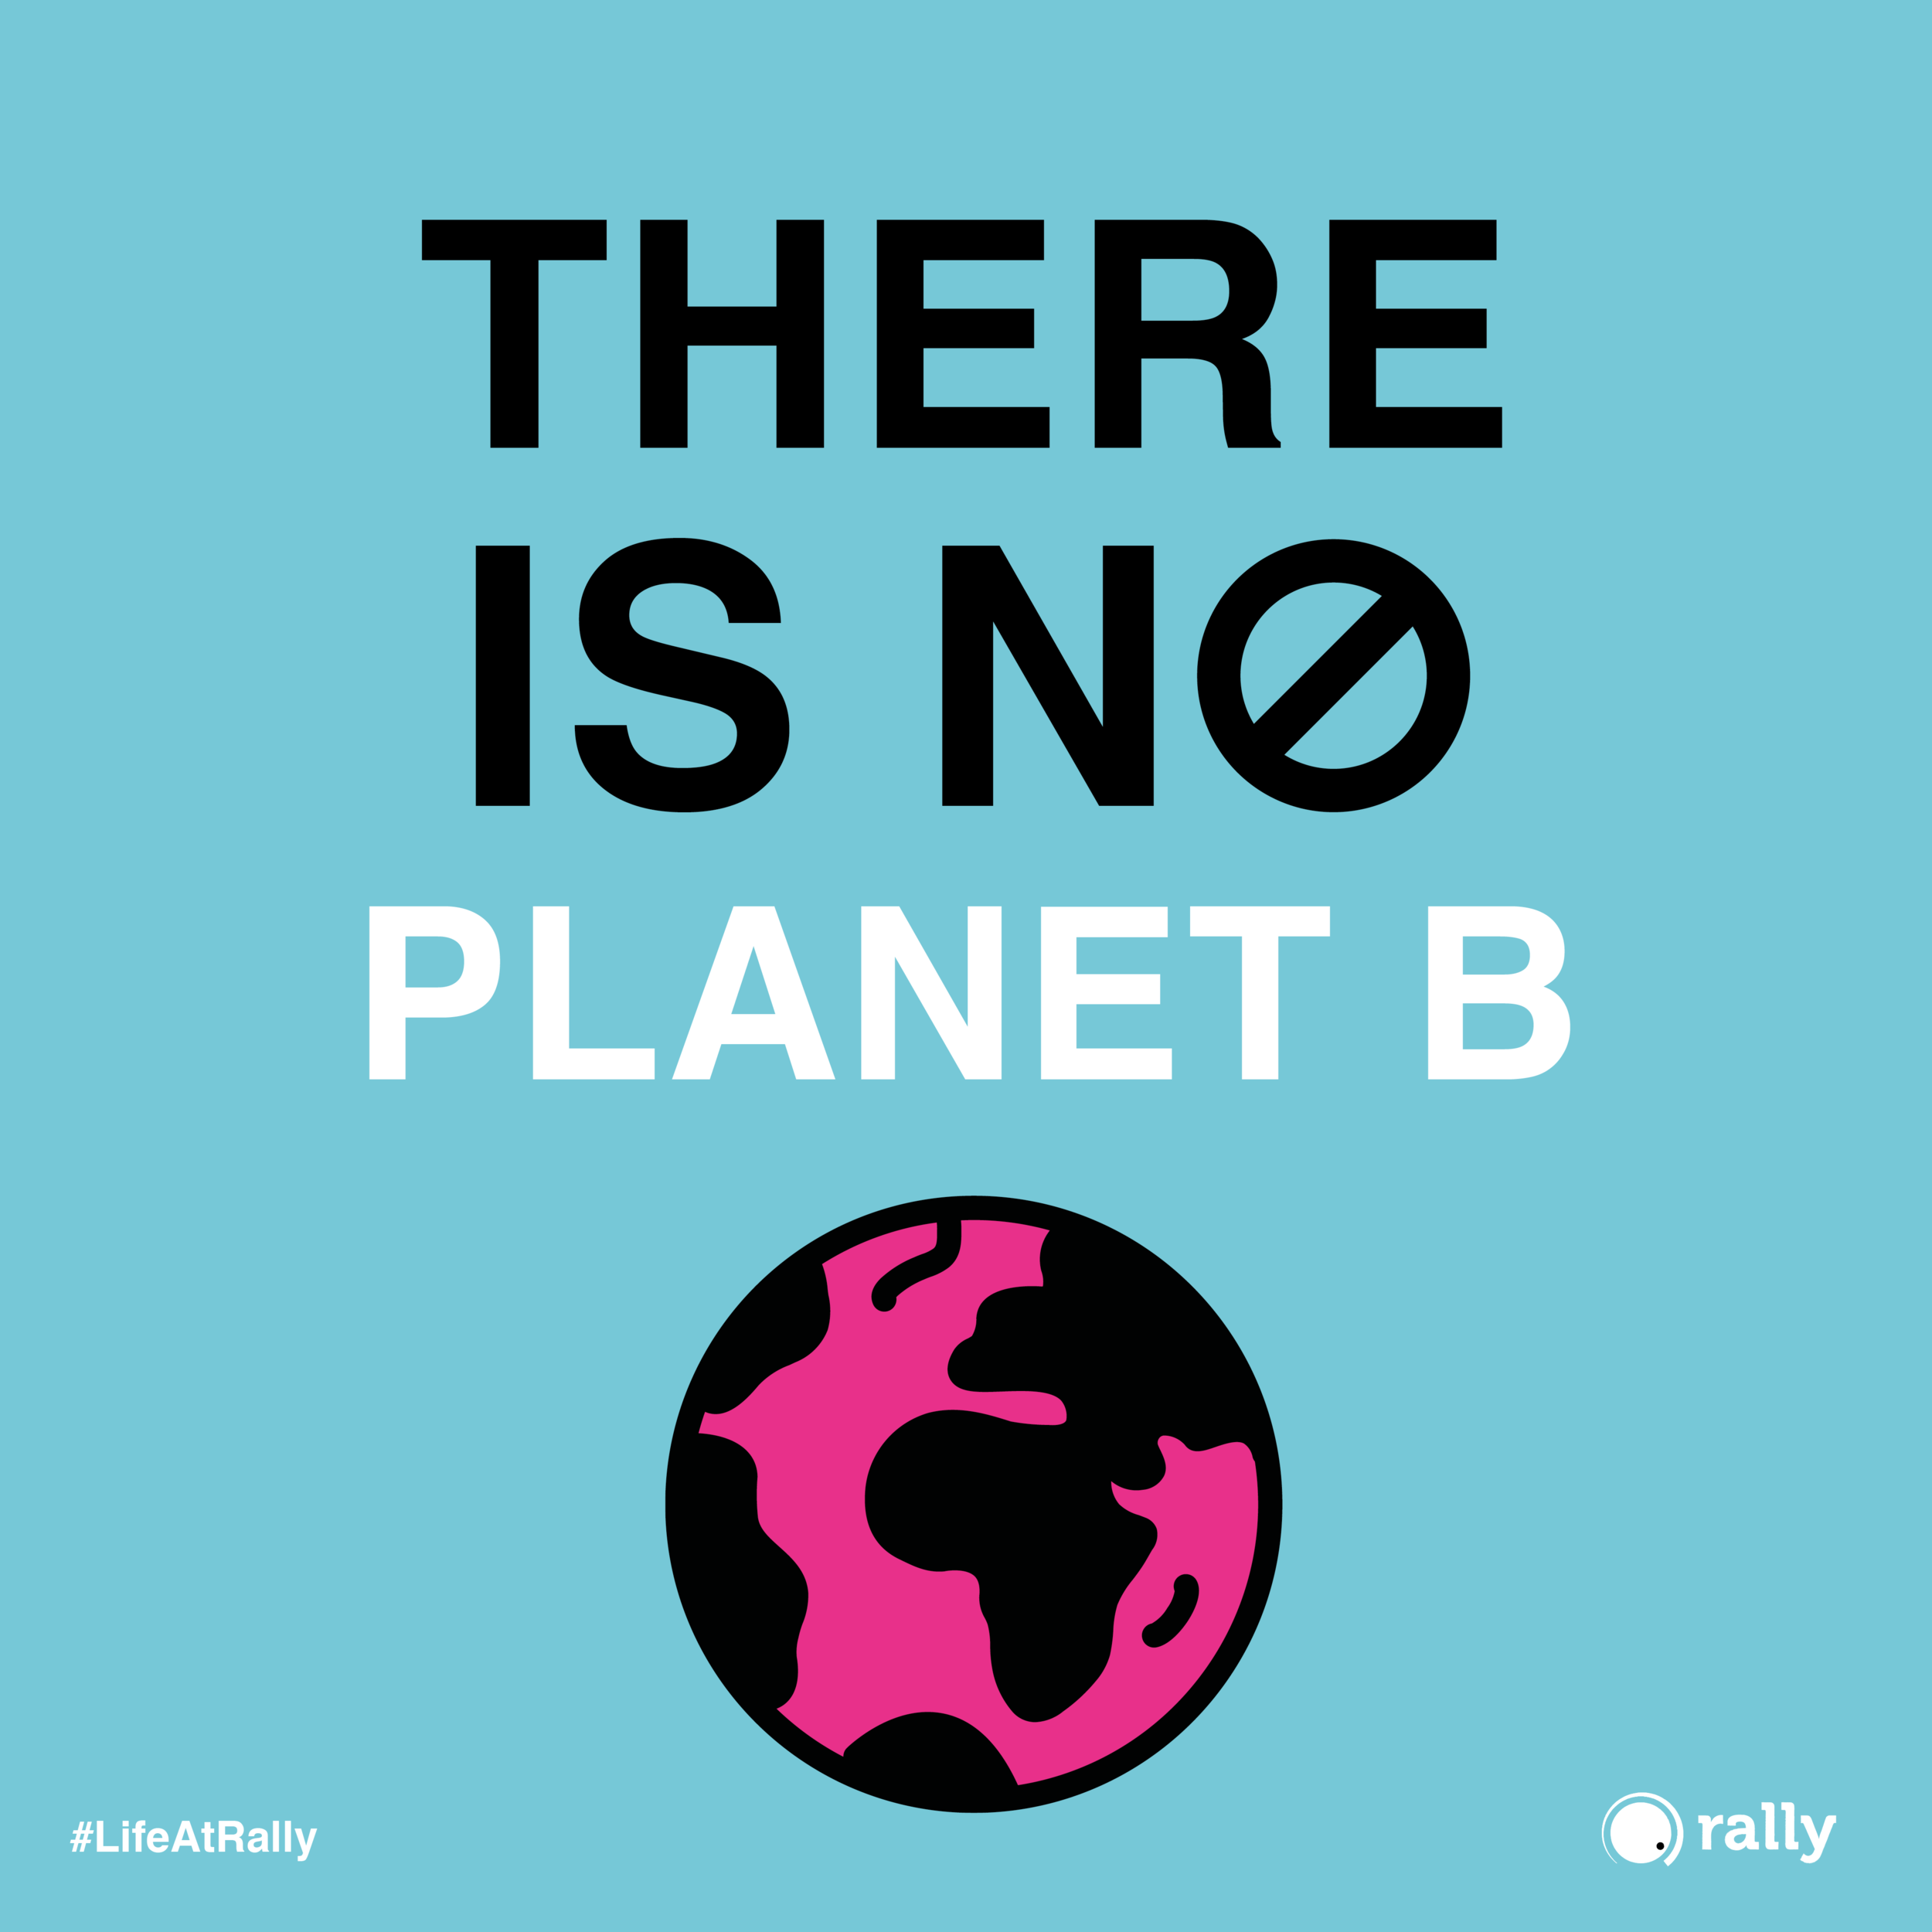 03 INSTA CLIMATE STRIKES NO PLANET B.png